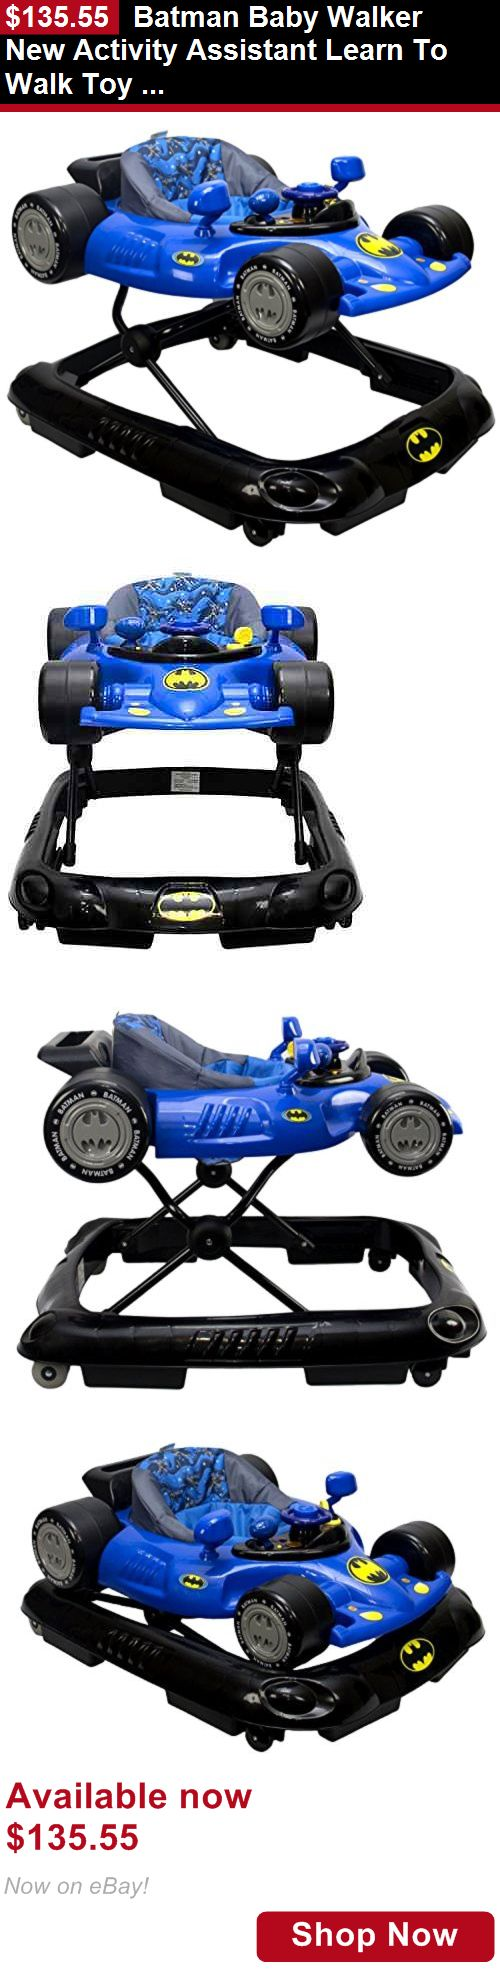 Baby walkers batman baby walker new activity assistant learn to walk toy walker for baby